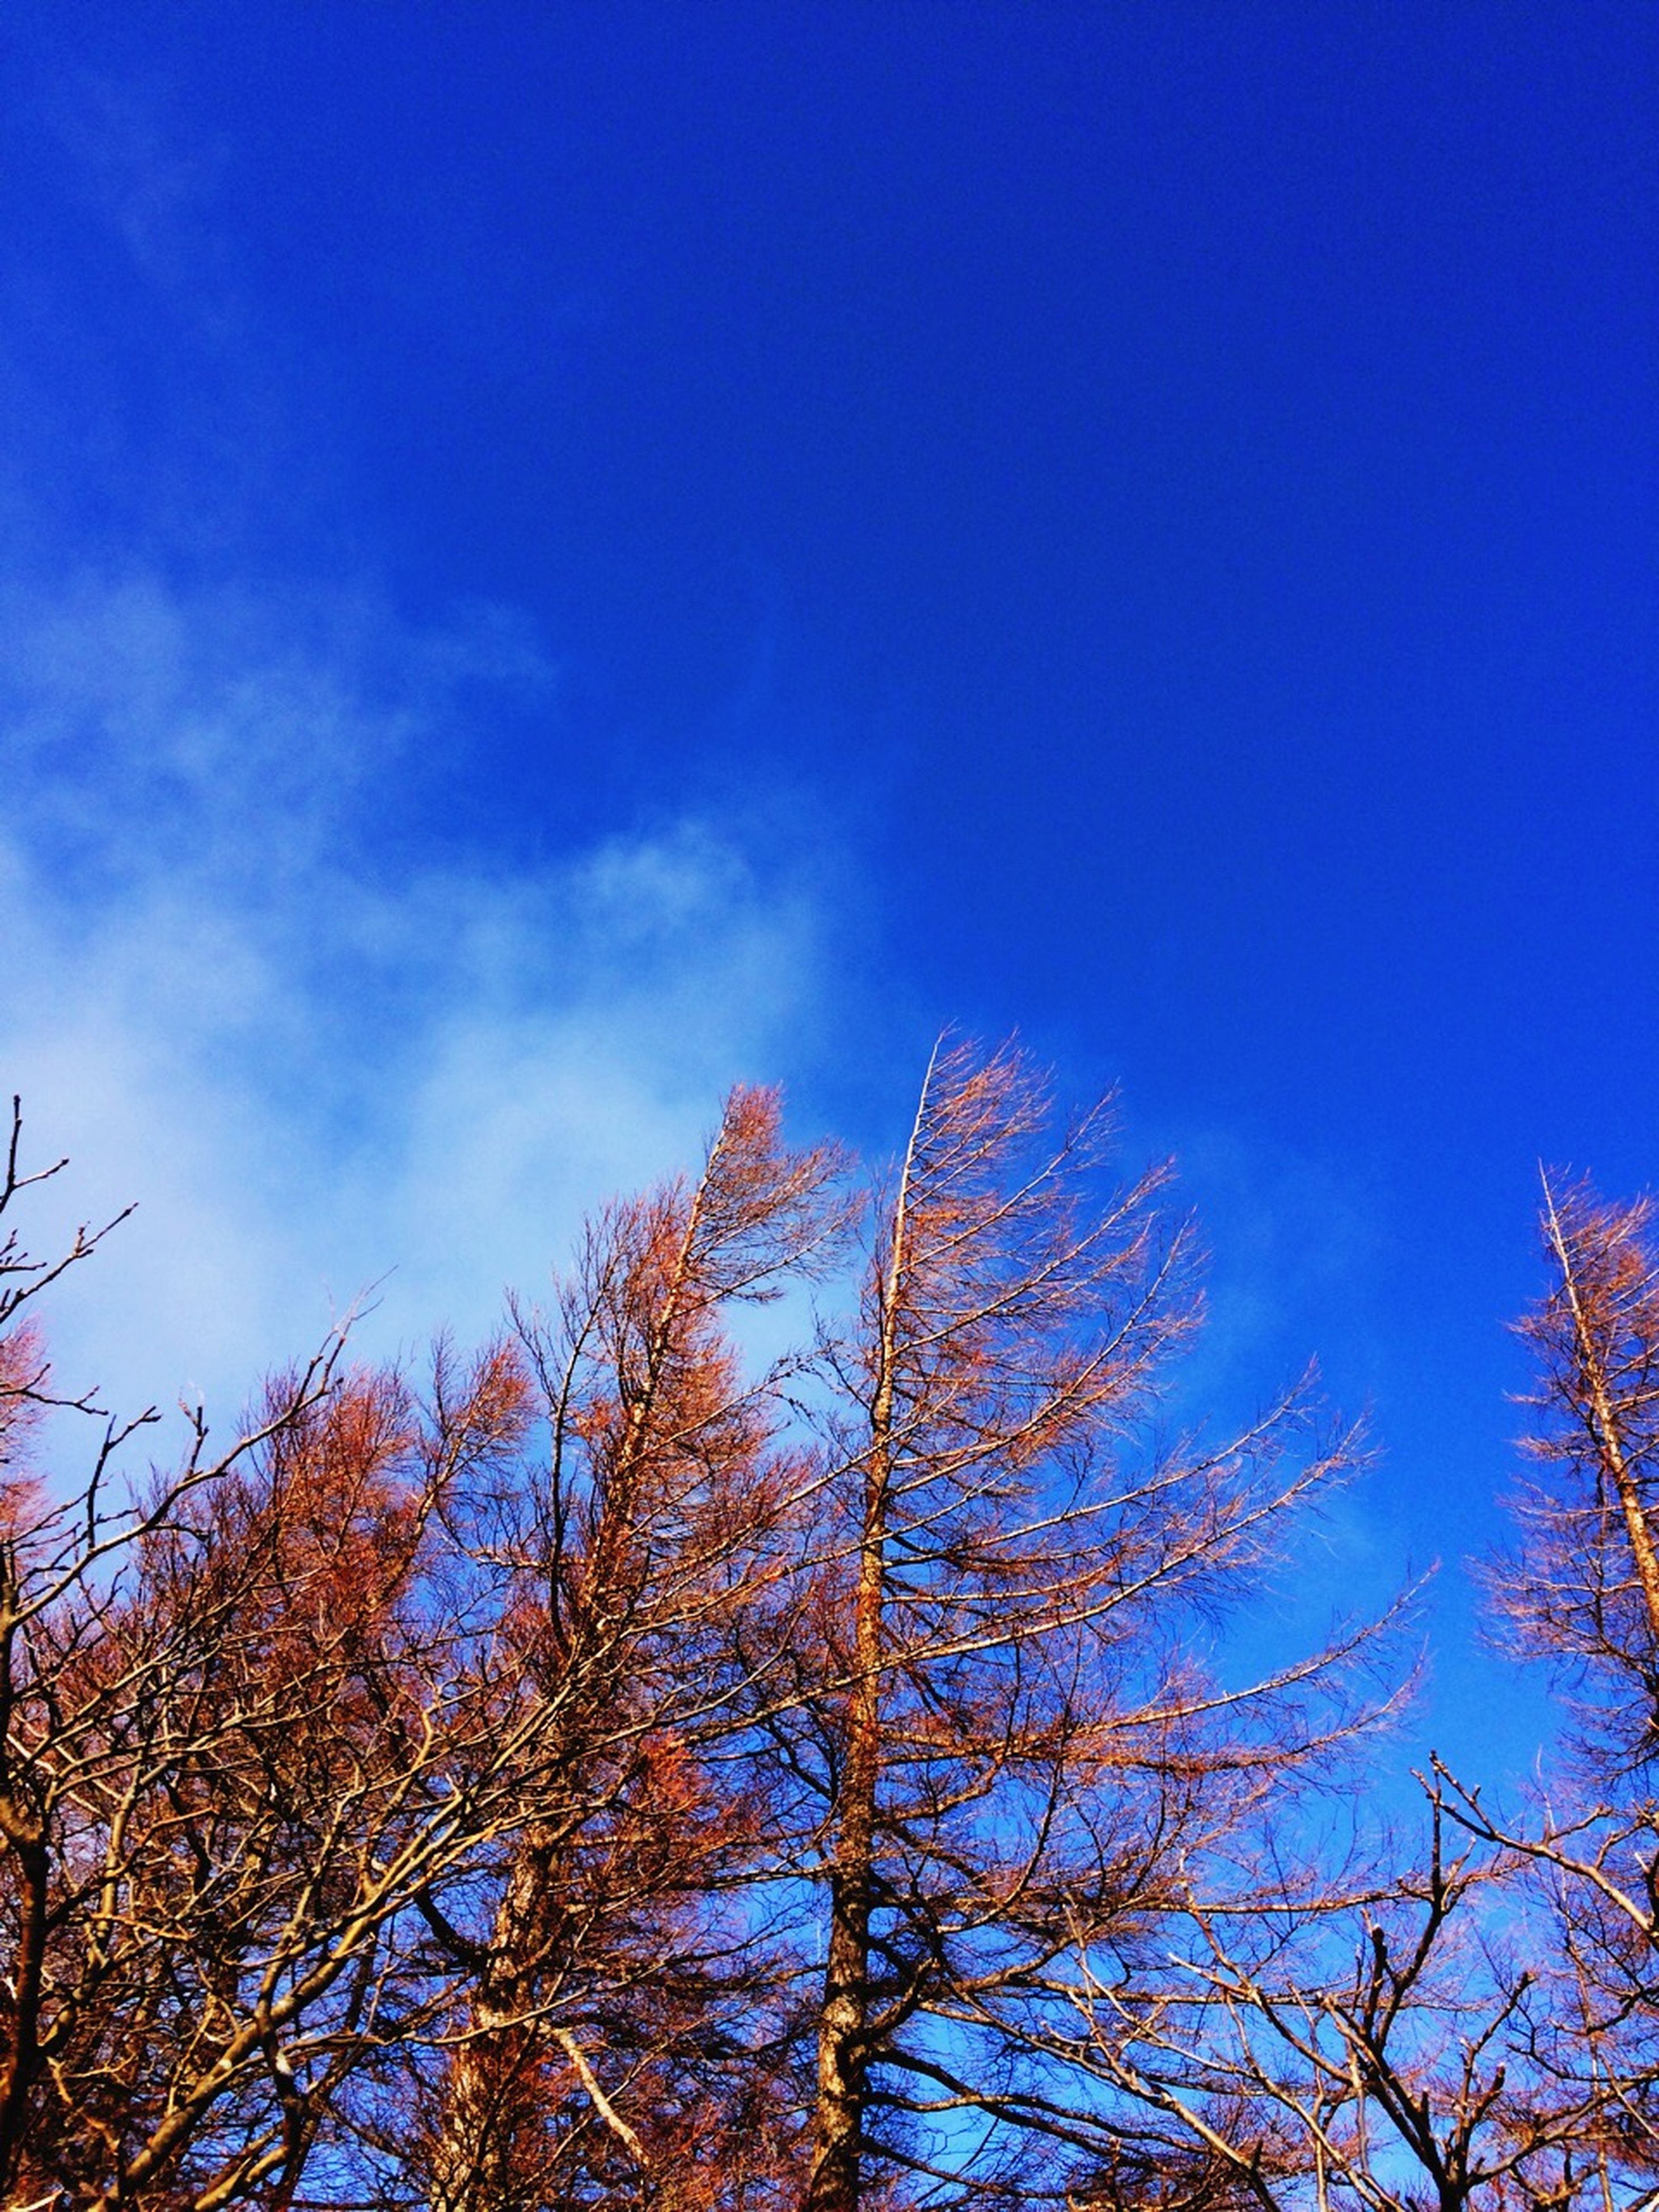 low angle view, tree, blue, branch, bare tree, sky, tranquility, beauty in nature, nature, scenics, growth, treetop, high section, clear sky, tranquil scene, outdoors, silhouette, day, no people, cloud - sky